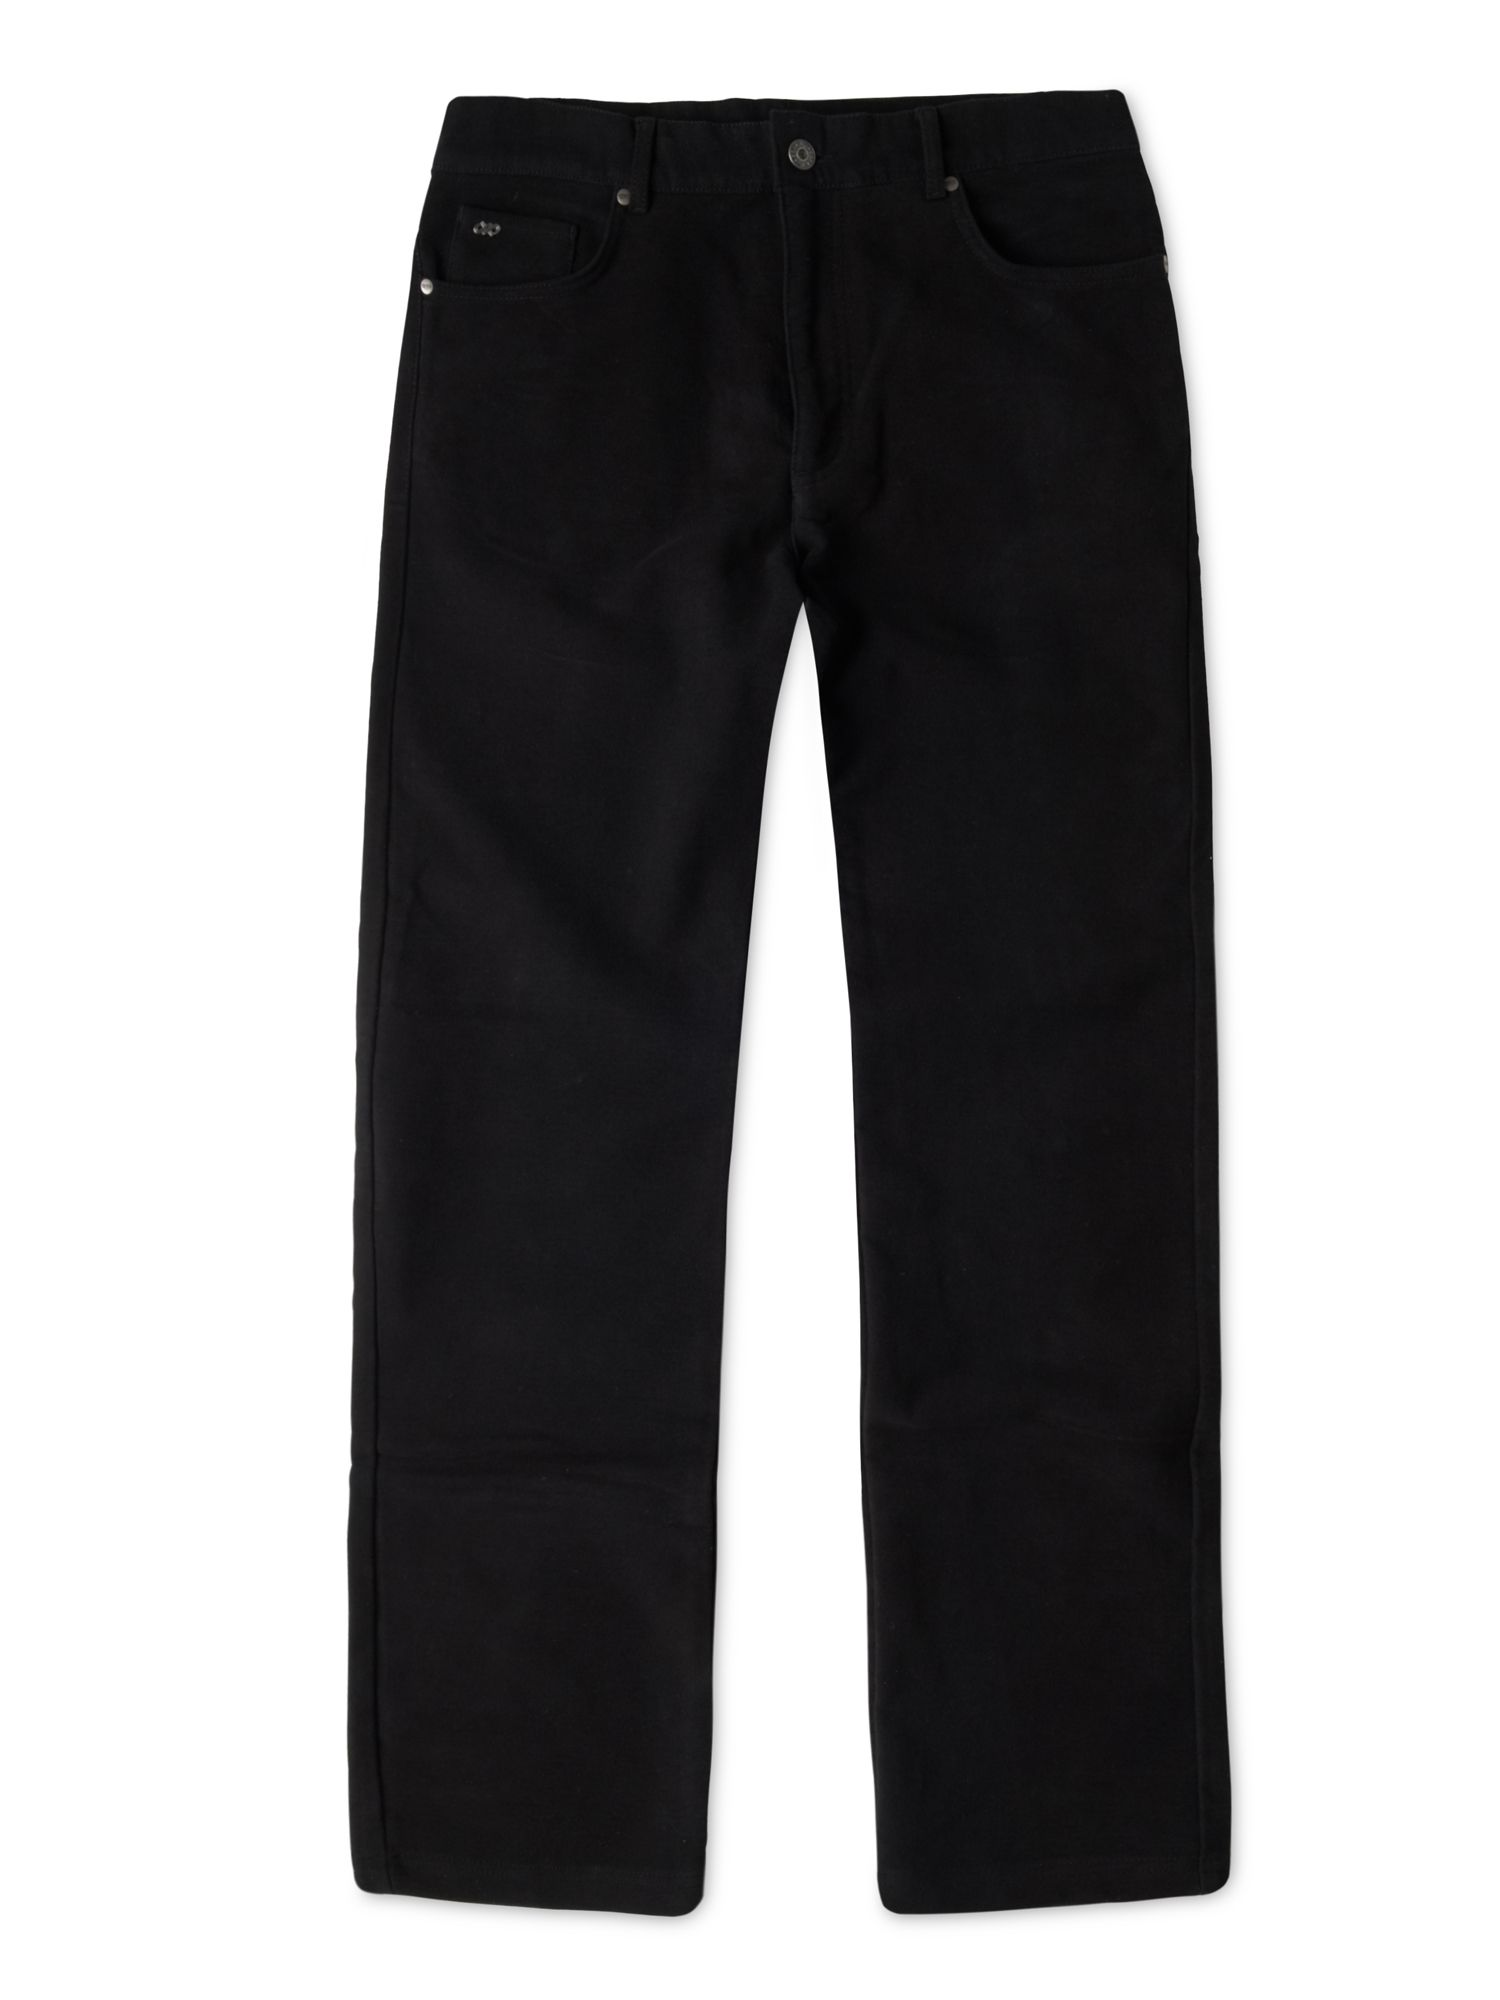 5 pocket berwick moleskin trousers